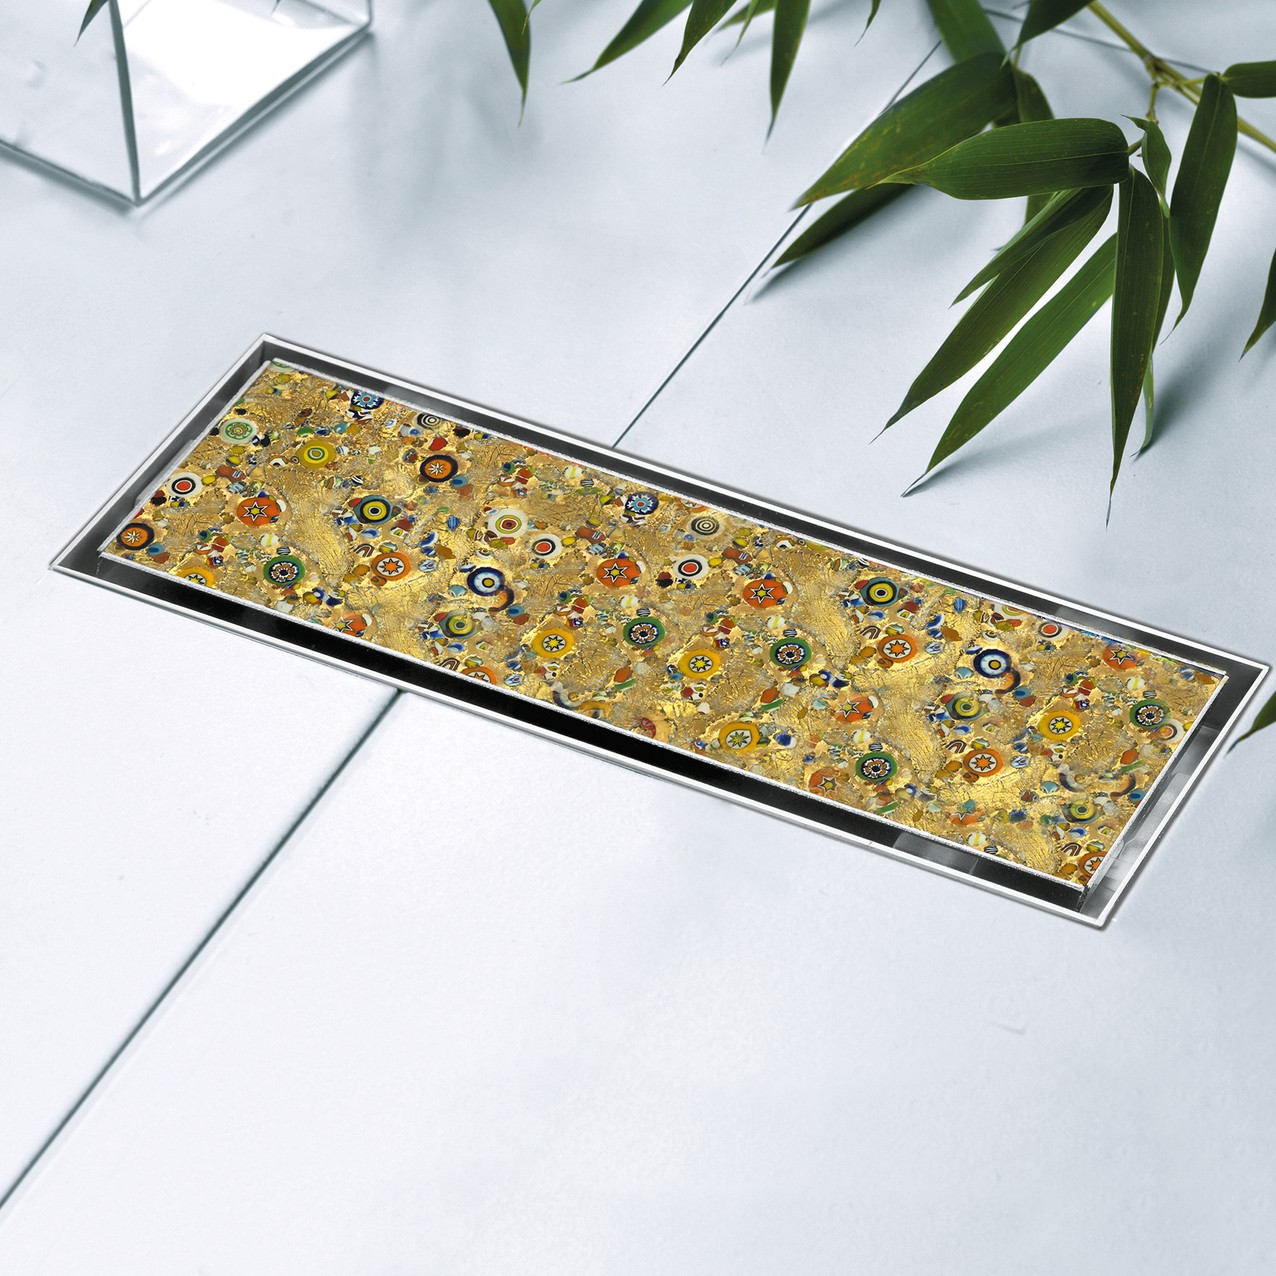 Lineardrain IN-TILE with a Gold Murrina Glass